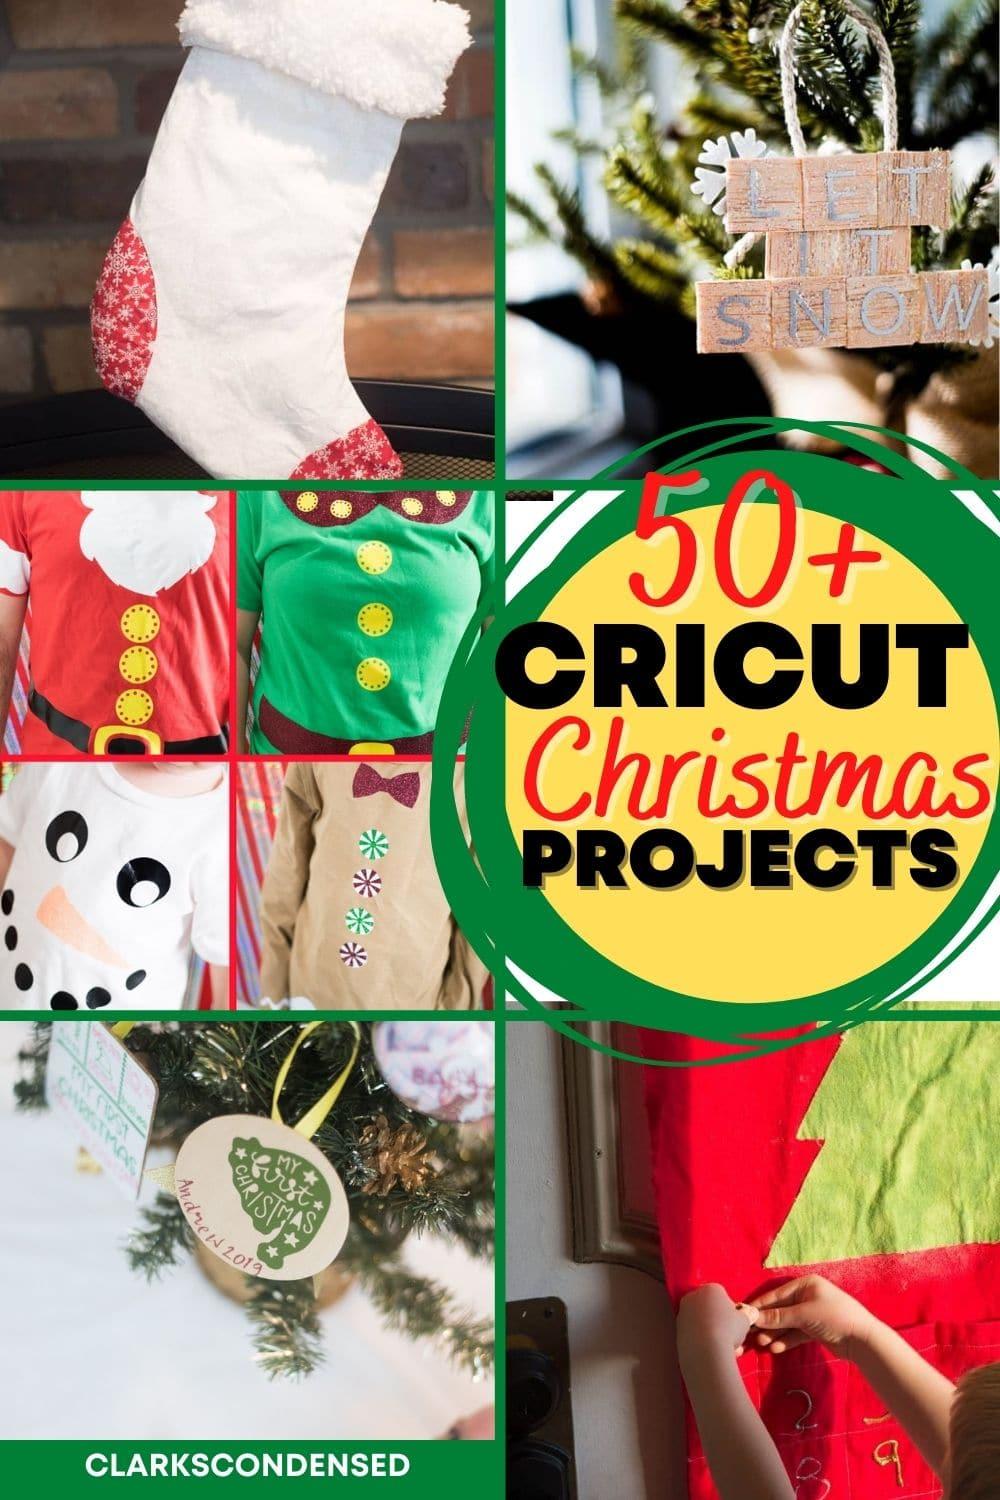 Here are 50+ amazing and jolly Cricut Christmas Projects to keep you busy as you await the most wonderful time of the year - christmas gift ideas, project ideas, gifts to sell, christmas decor, and more! via @clarkscondensed